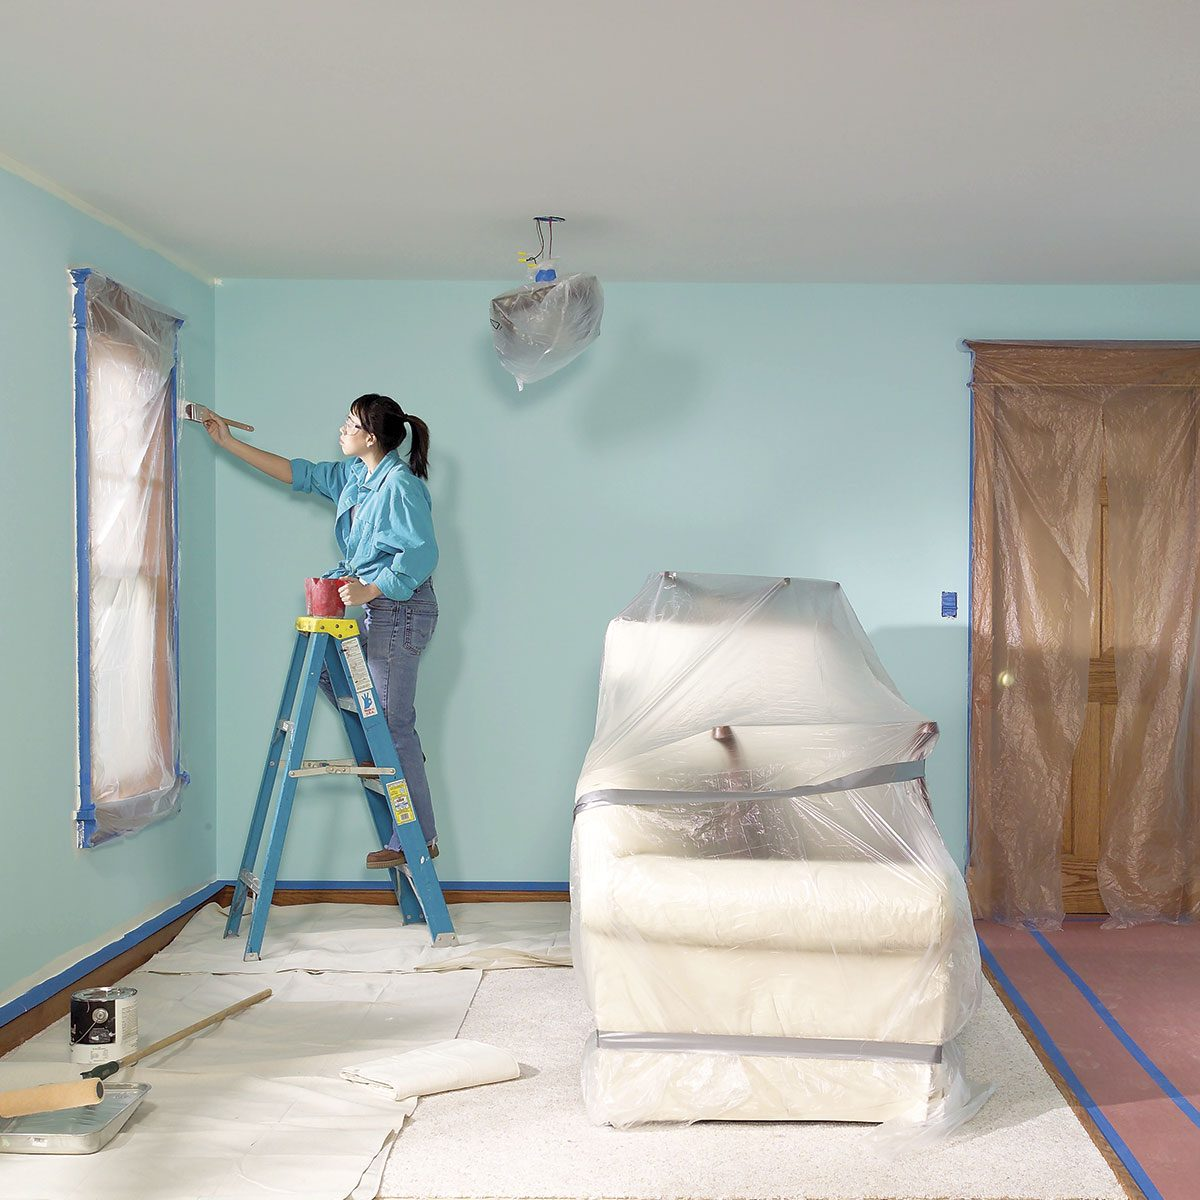 Clear the Entire Room Before Painting